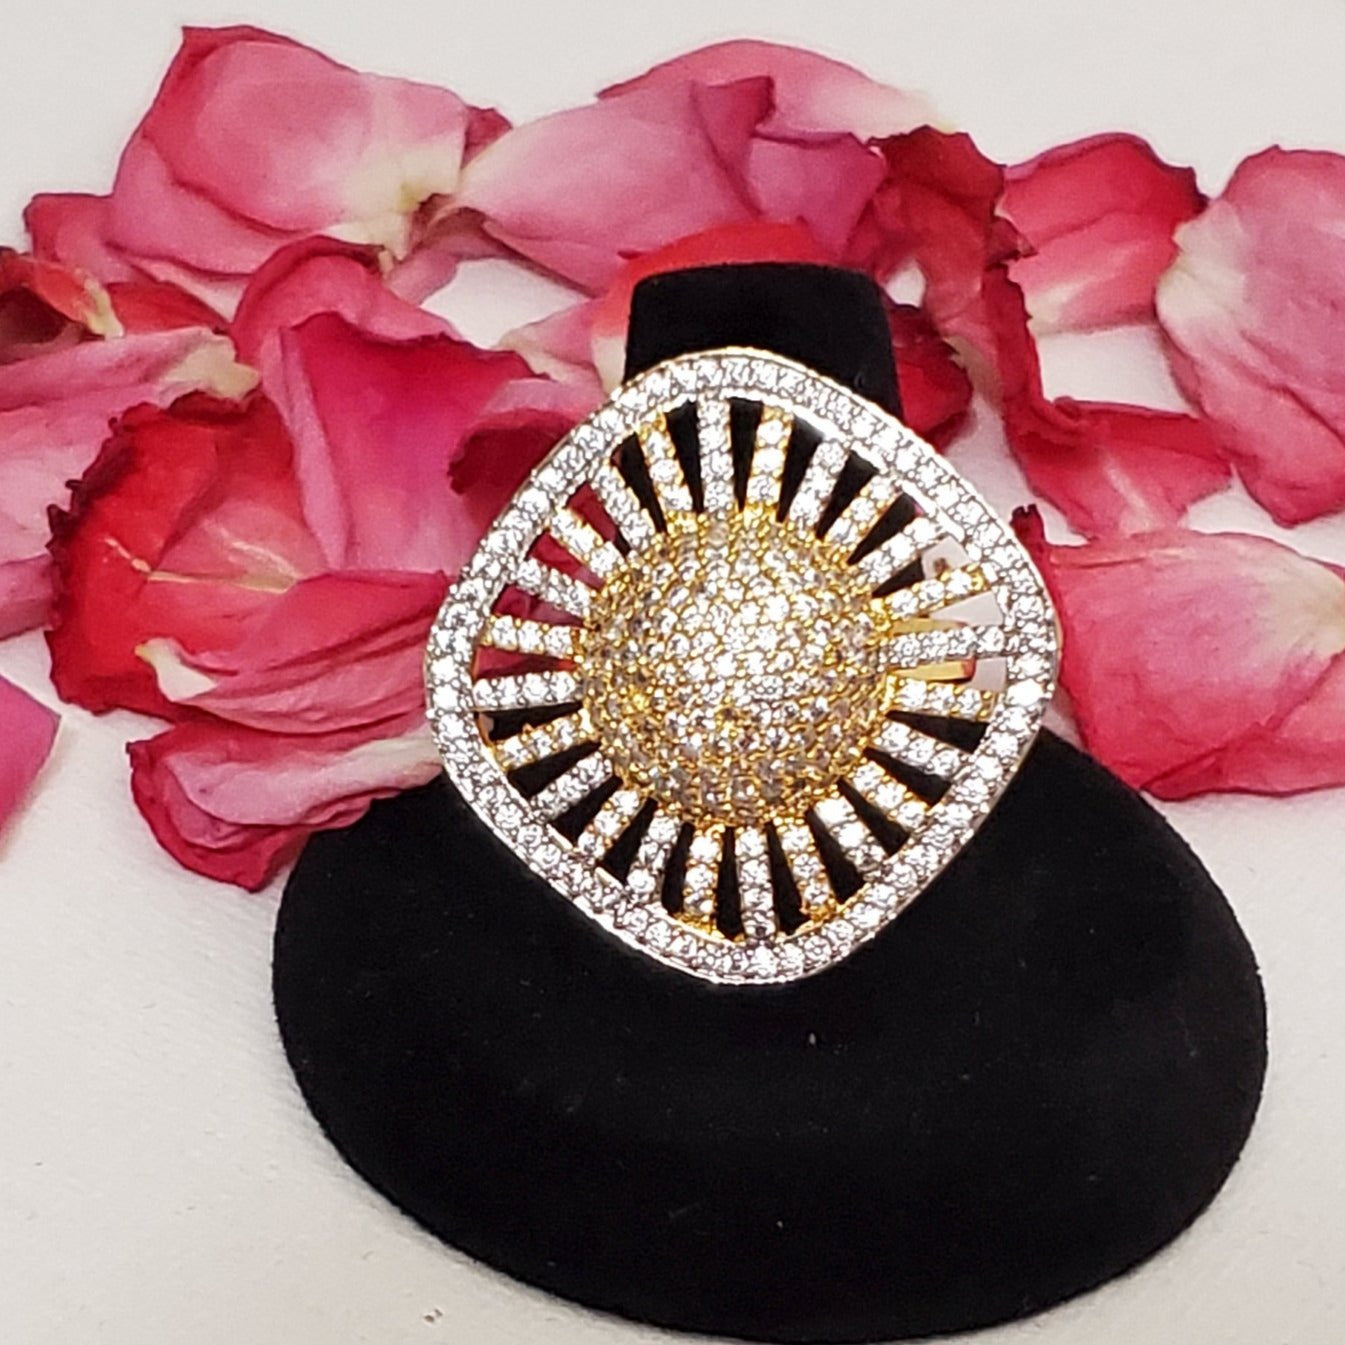 CZ/AD Diamond Ring/statement Ring/party wear/Indian jewelry/cubic zircon Ring/oversize Ring/ Handcrafted CZ Ring/Bollywood Designer jewelry